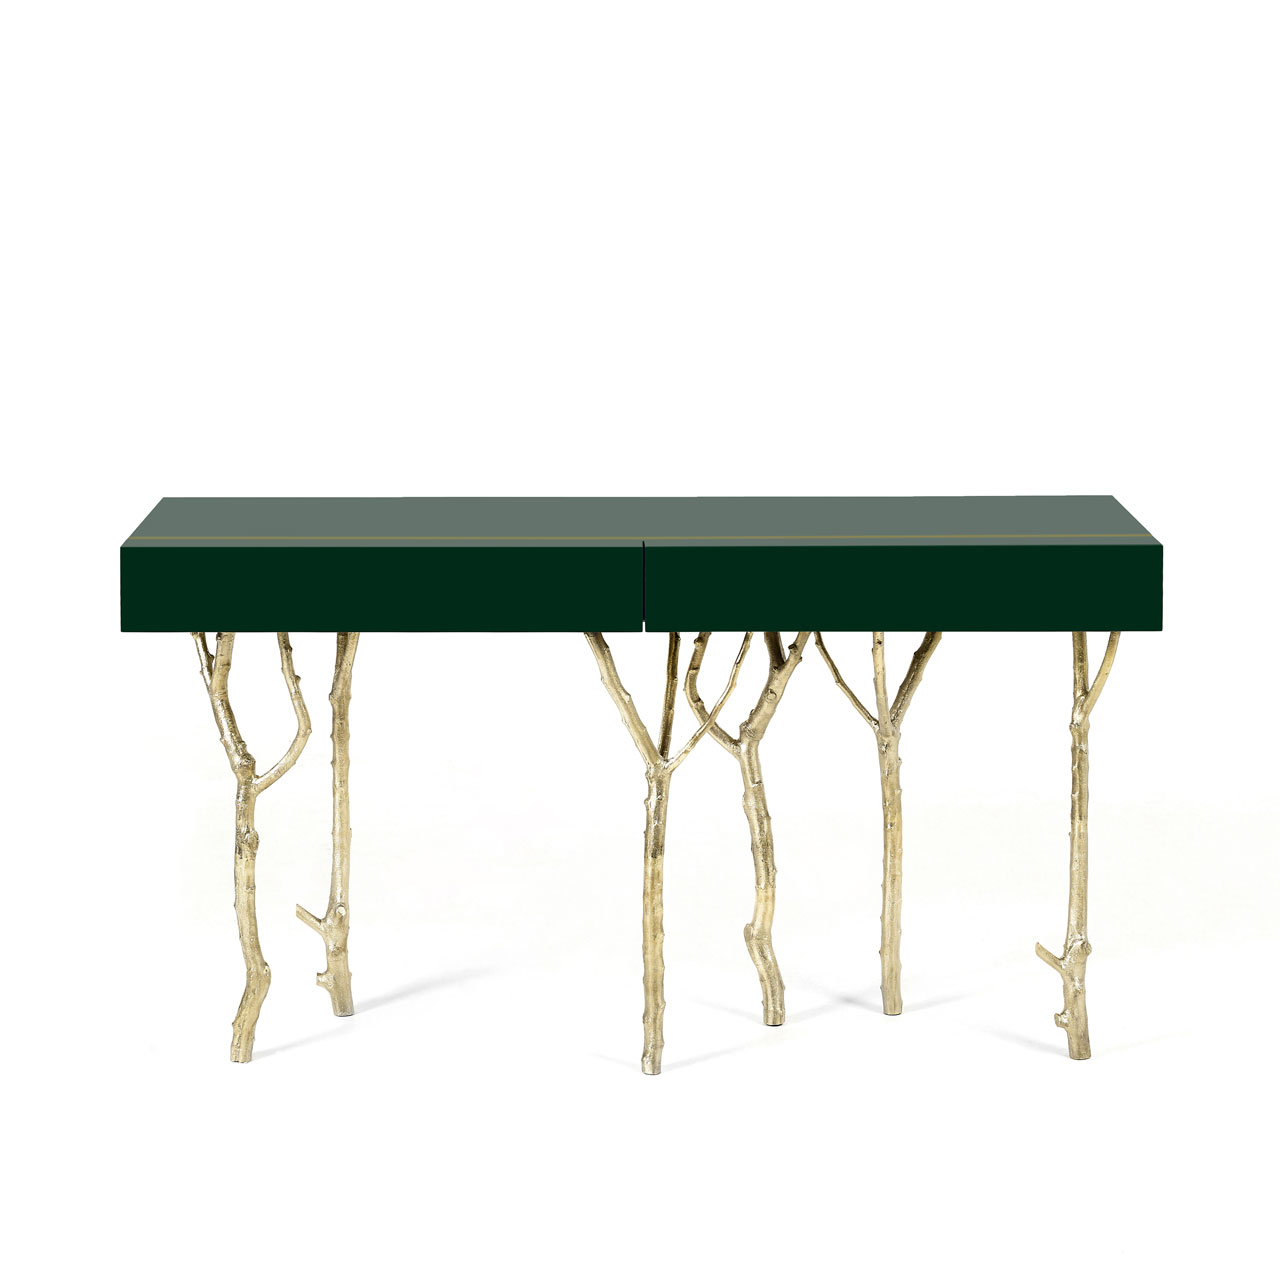 The Fig Tree Console is a tribute to Nature's graciousness. The legs are made from fig tree branches in brass casting mold. The lacquered top has two drawers with purpleheart wood veneer lined with a subtle metal rim. Photo © Ginger & Jagger.